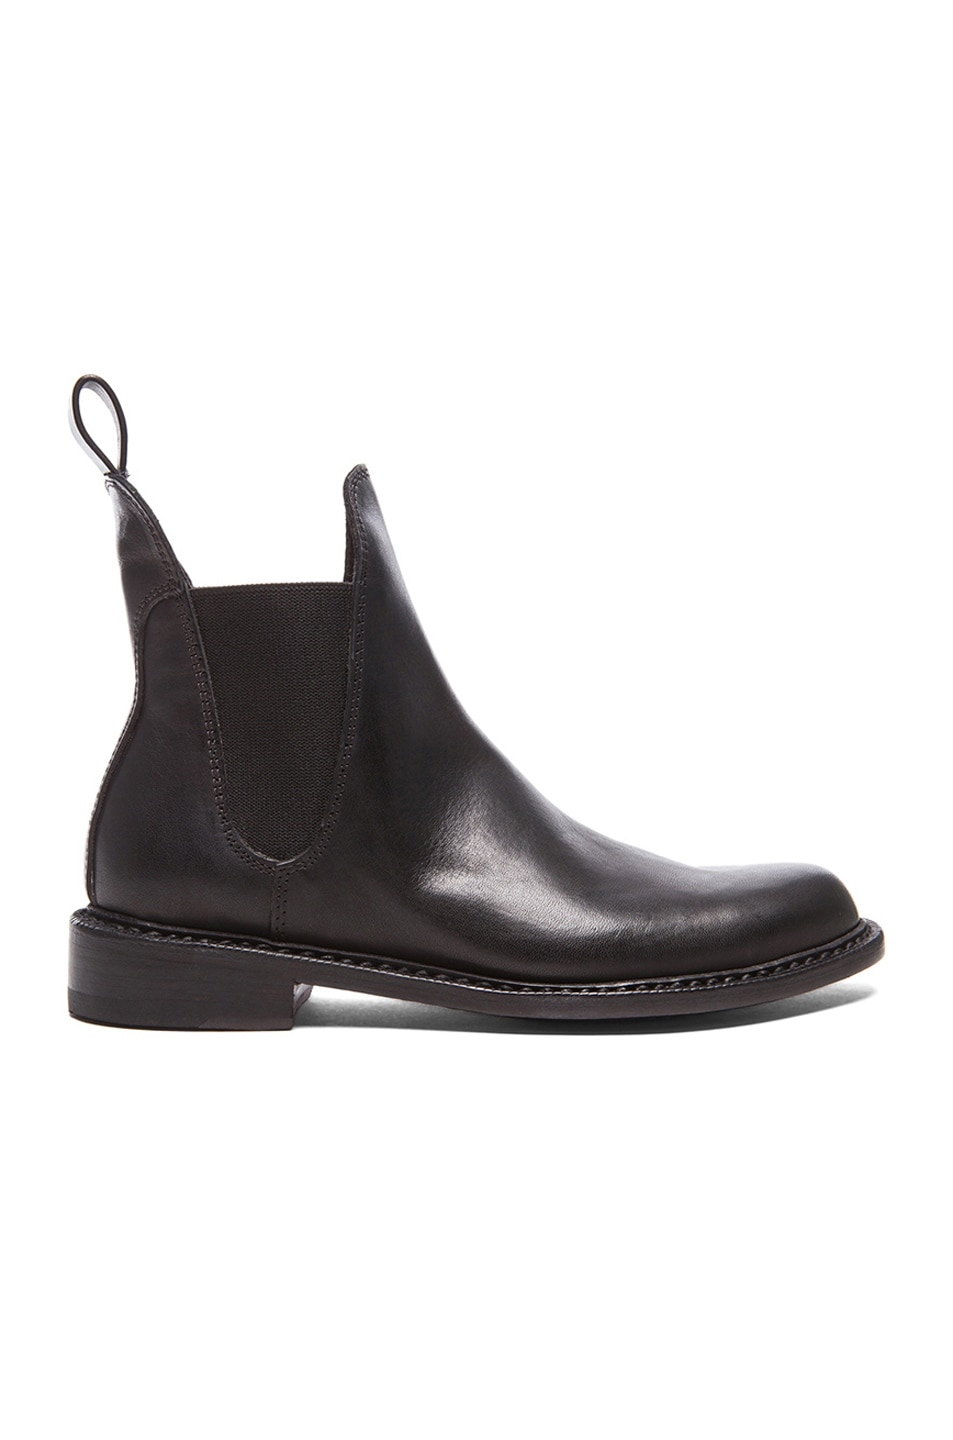 Image 1 of Rag & Bone Dartford Chelsea Leather Boots in Black